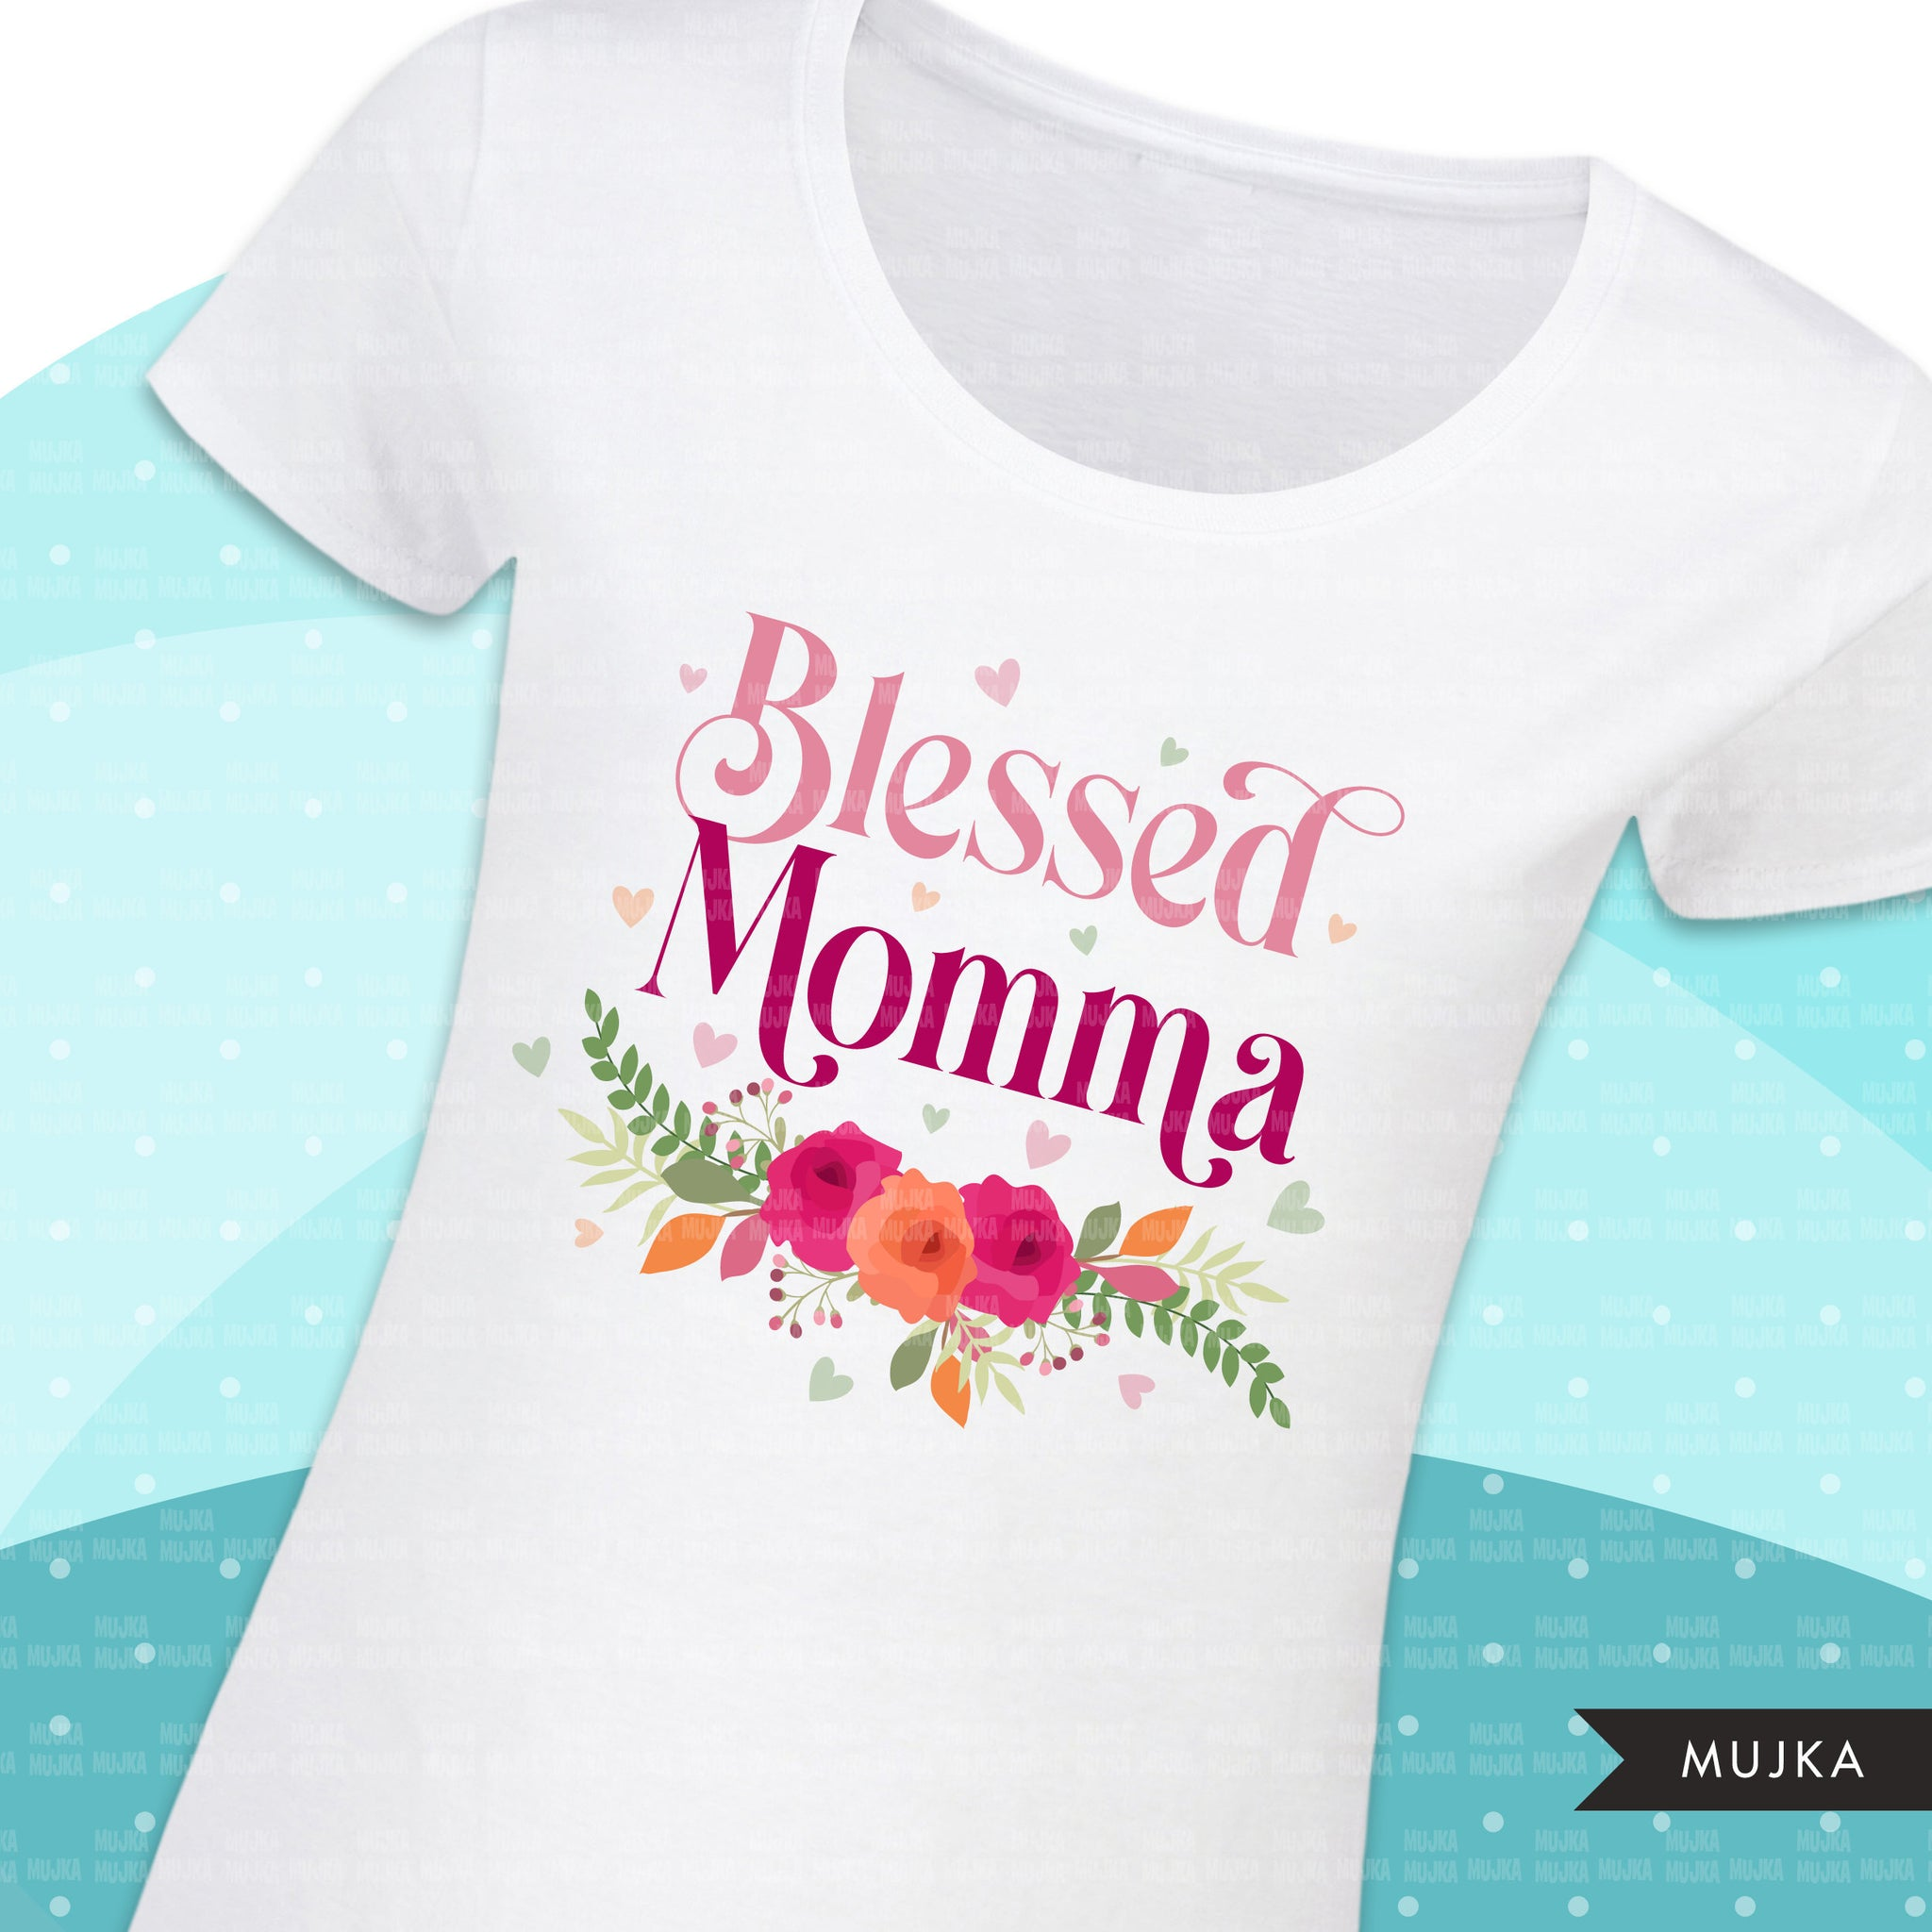 Blessed Momma png, blessed mom sublimation designs digital download, blessed mom Shirt designs, mothers day designs for cricut downloads